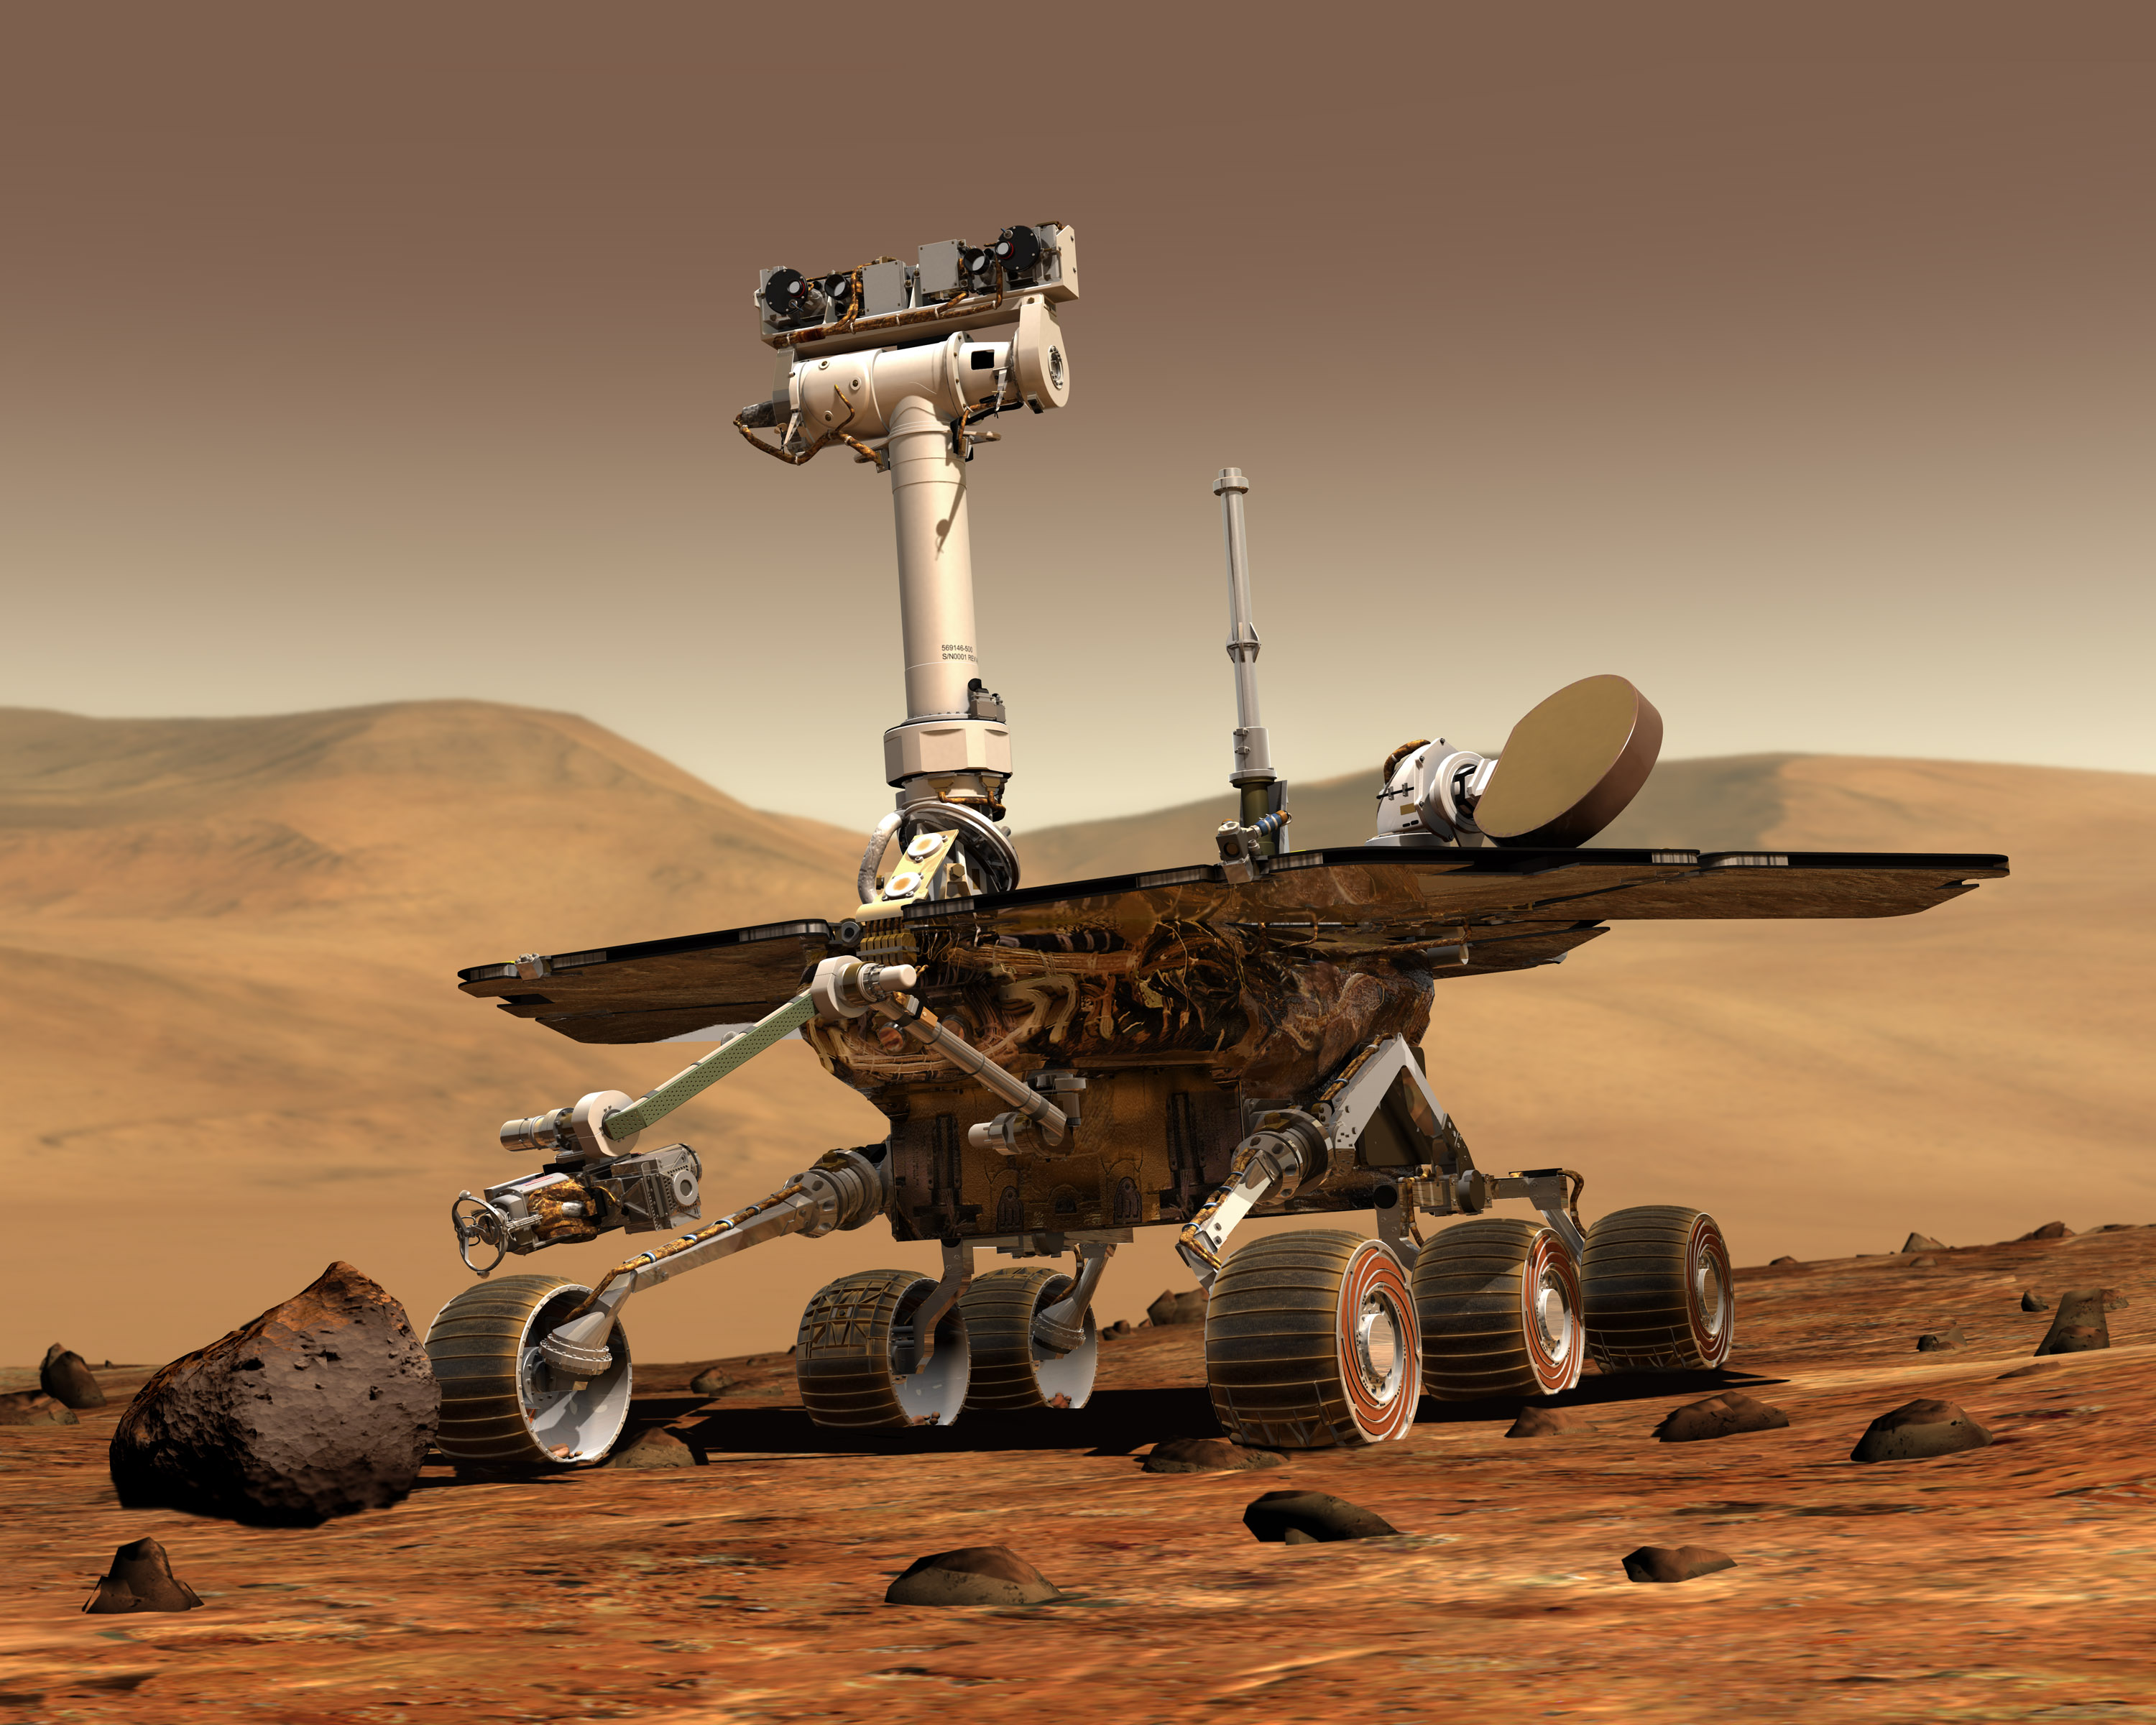 dfdaa8e9e3b8ea NASA s Record-Setting Opportunity Rover Mission on Mars Comes to End ...